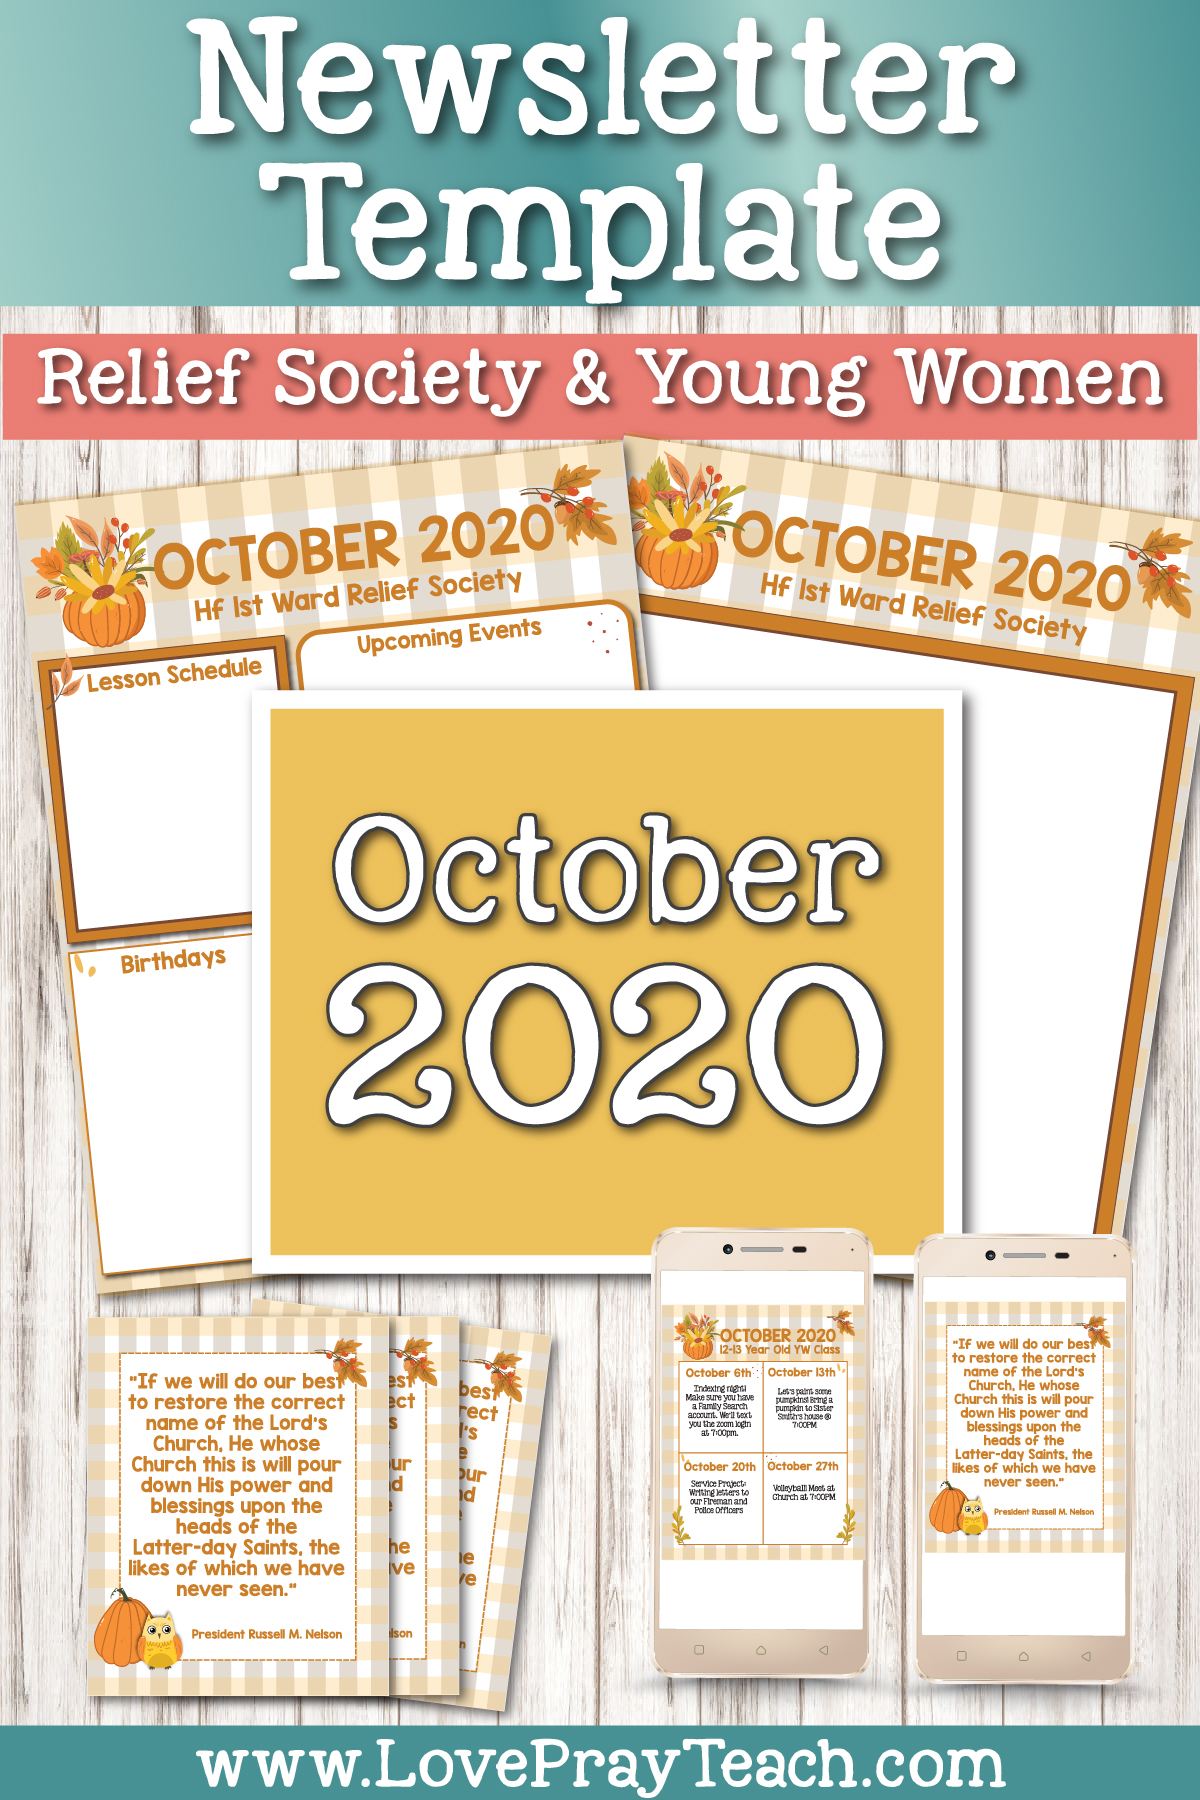 October 2020 Editable Newsletter Template Bundle www.LovePrayTeach.com